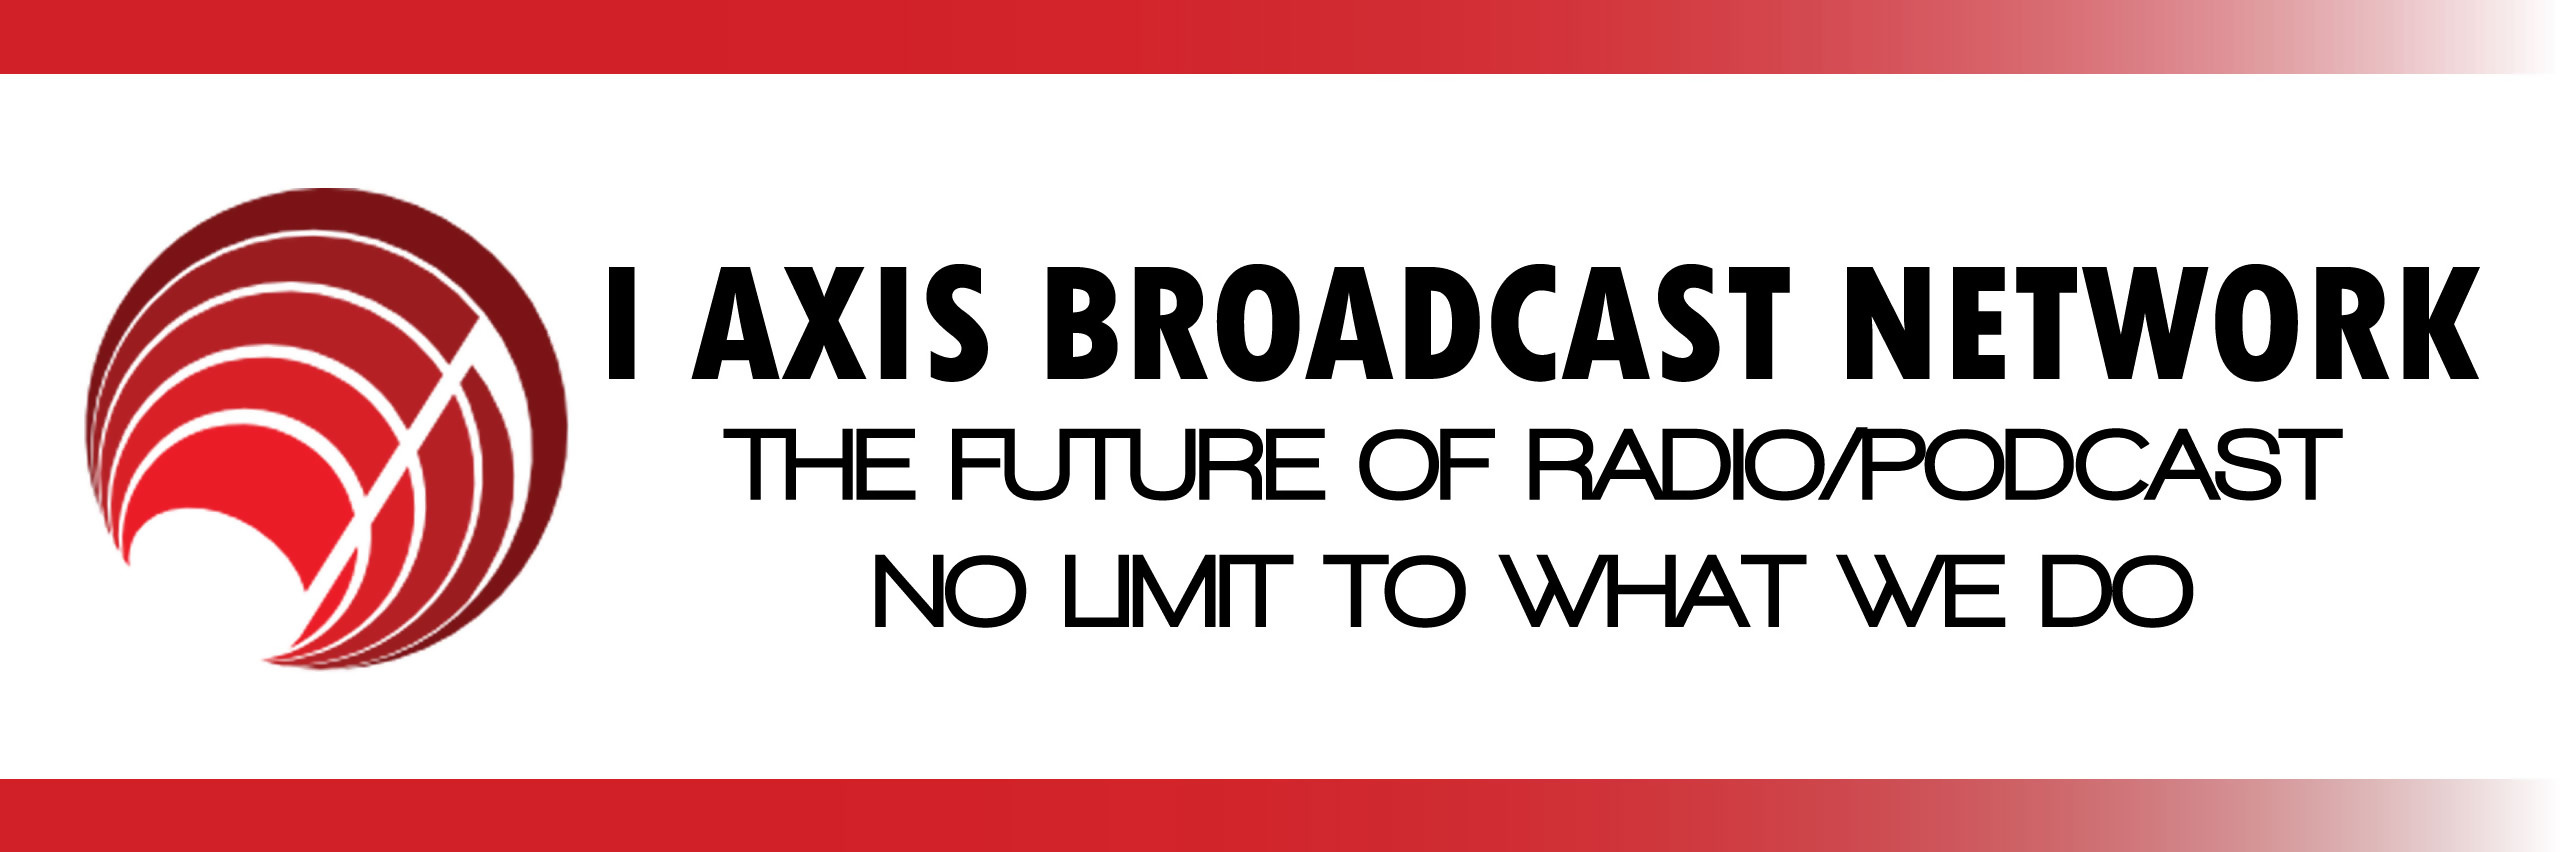 I AXIS BROADCAST NETWORK LIVE